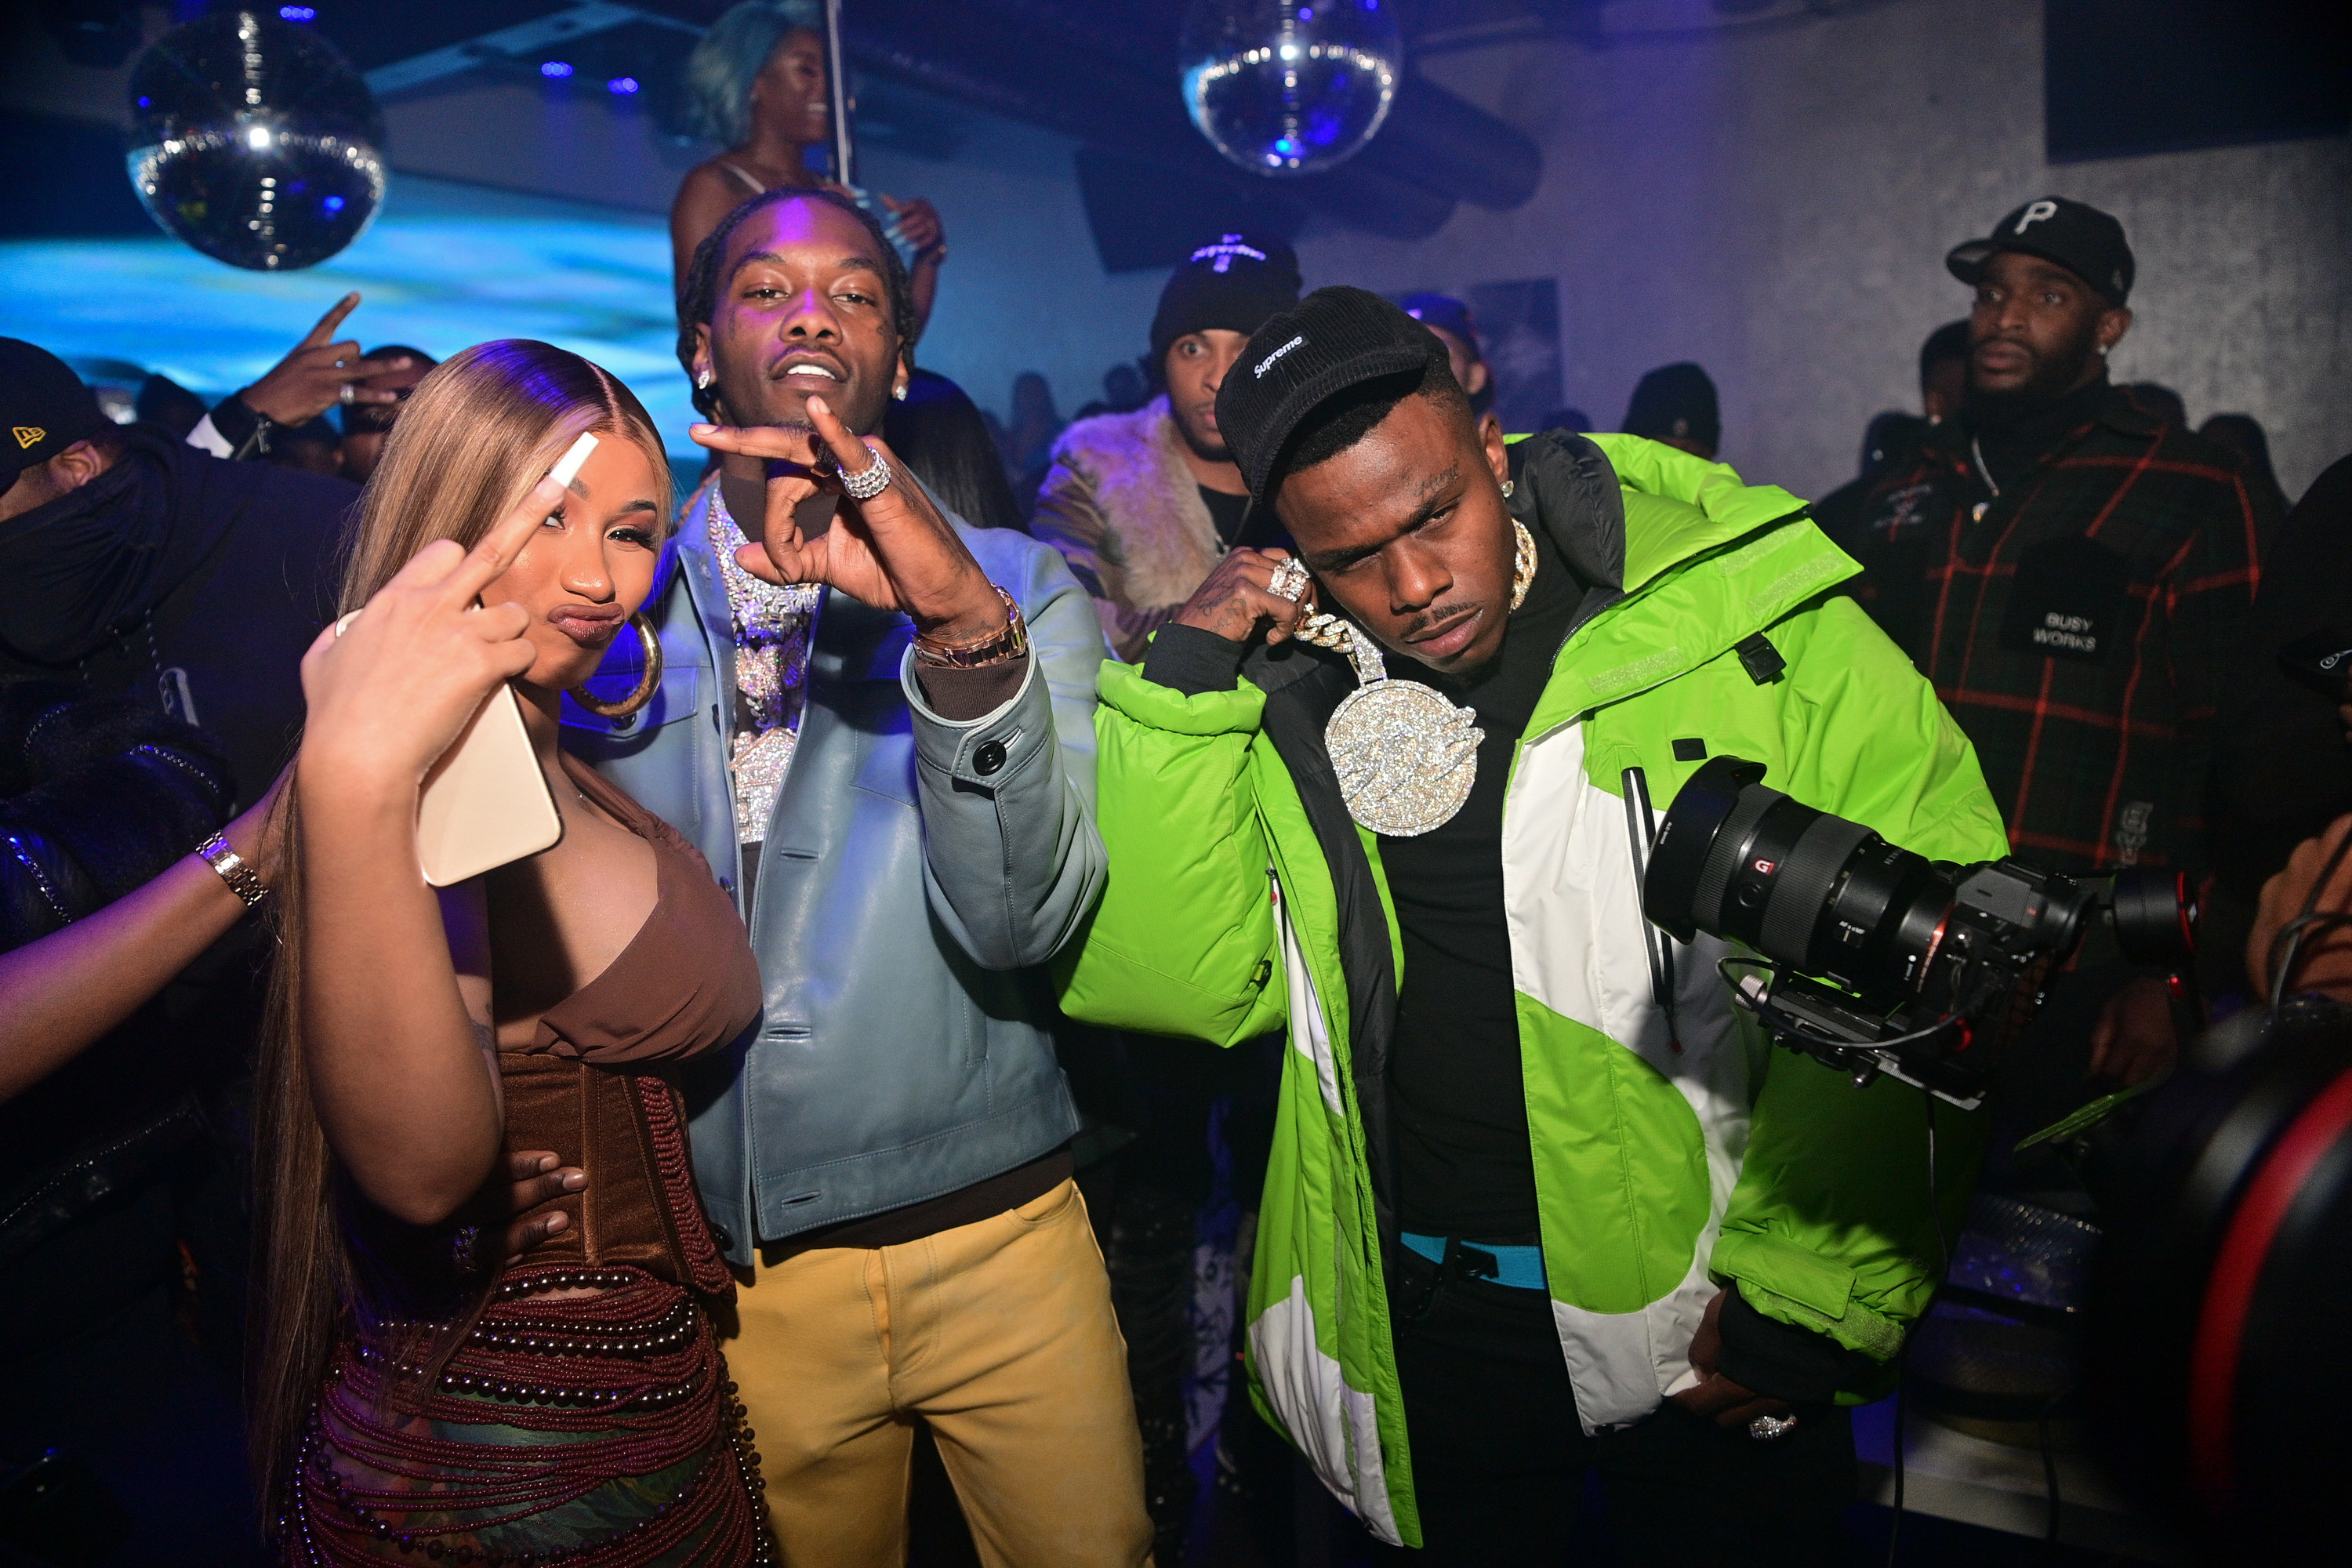 Cardi, Offset and DaBaby posing for photos at an event